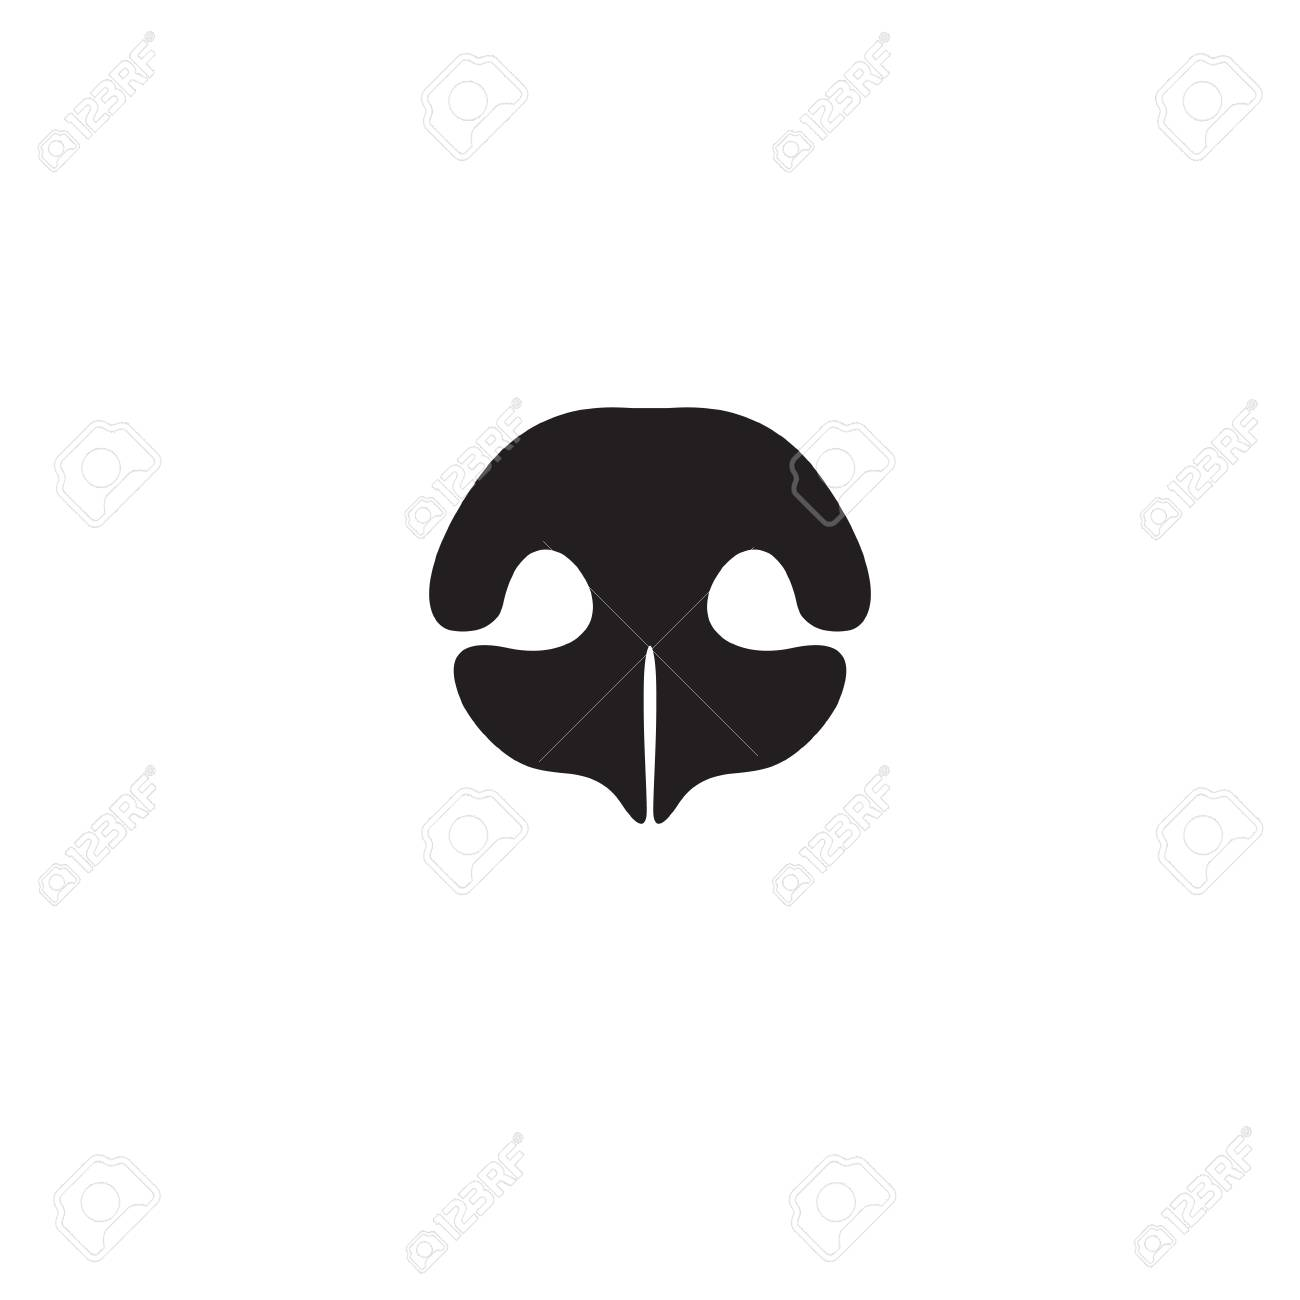 Dog's nose icon. Element of logo for pet shop, vet clinic, dog products or services. Vector Illustration - 71090544